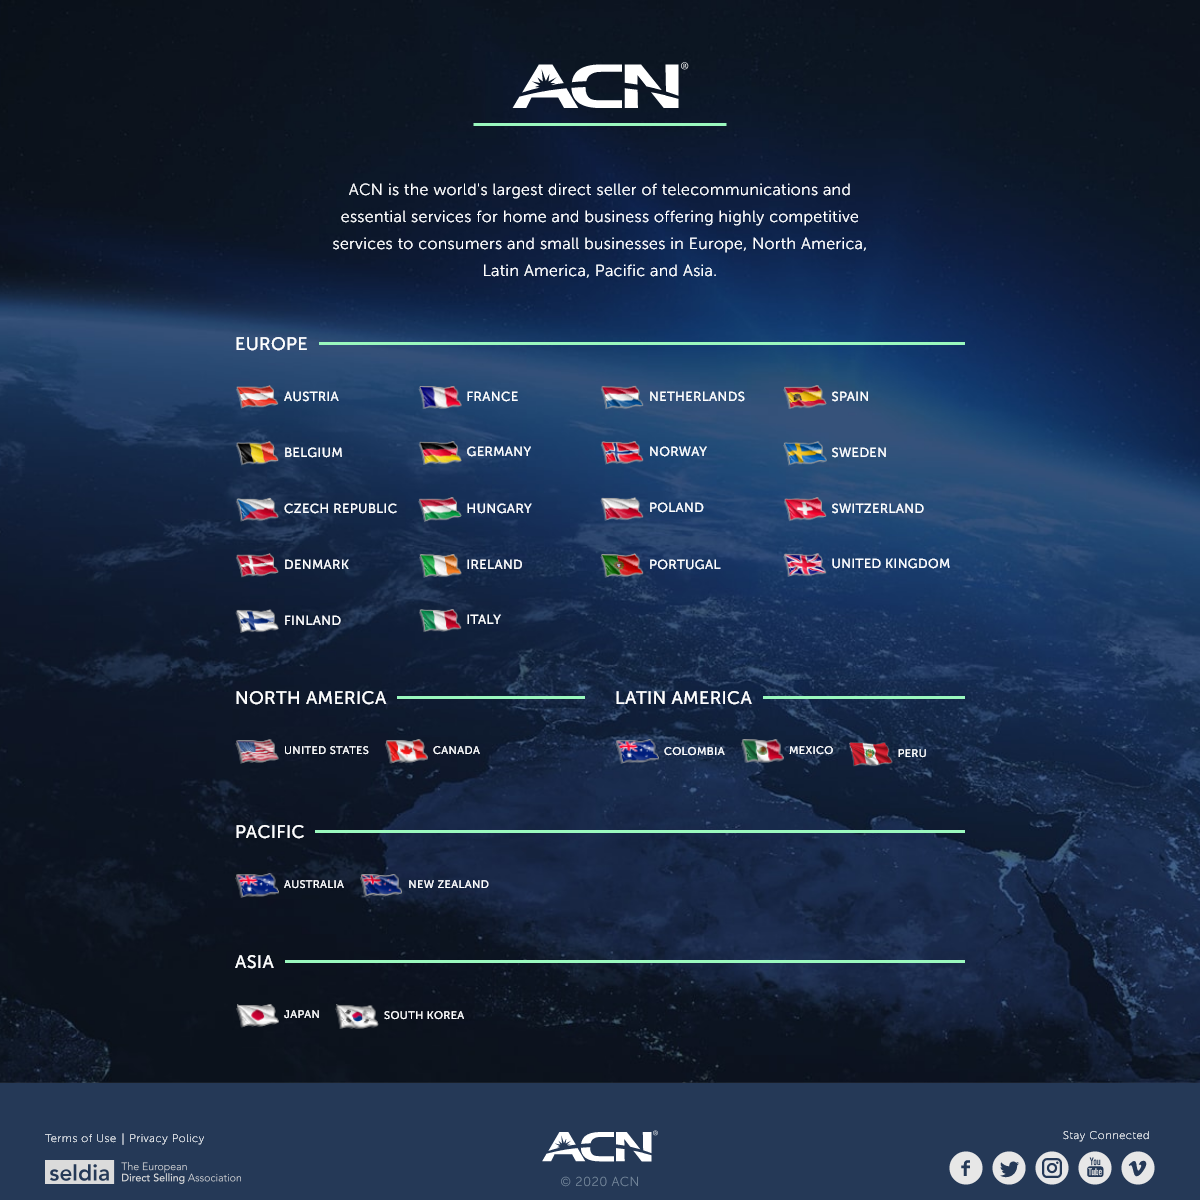 ACN - Direct Seller of Essential Services for home and business